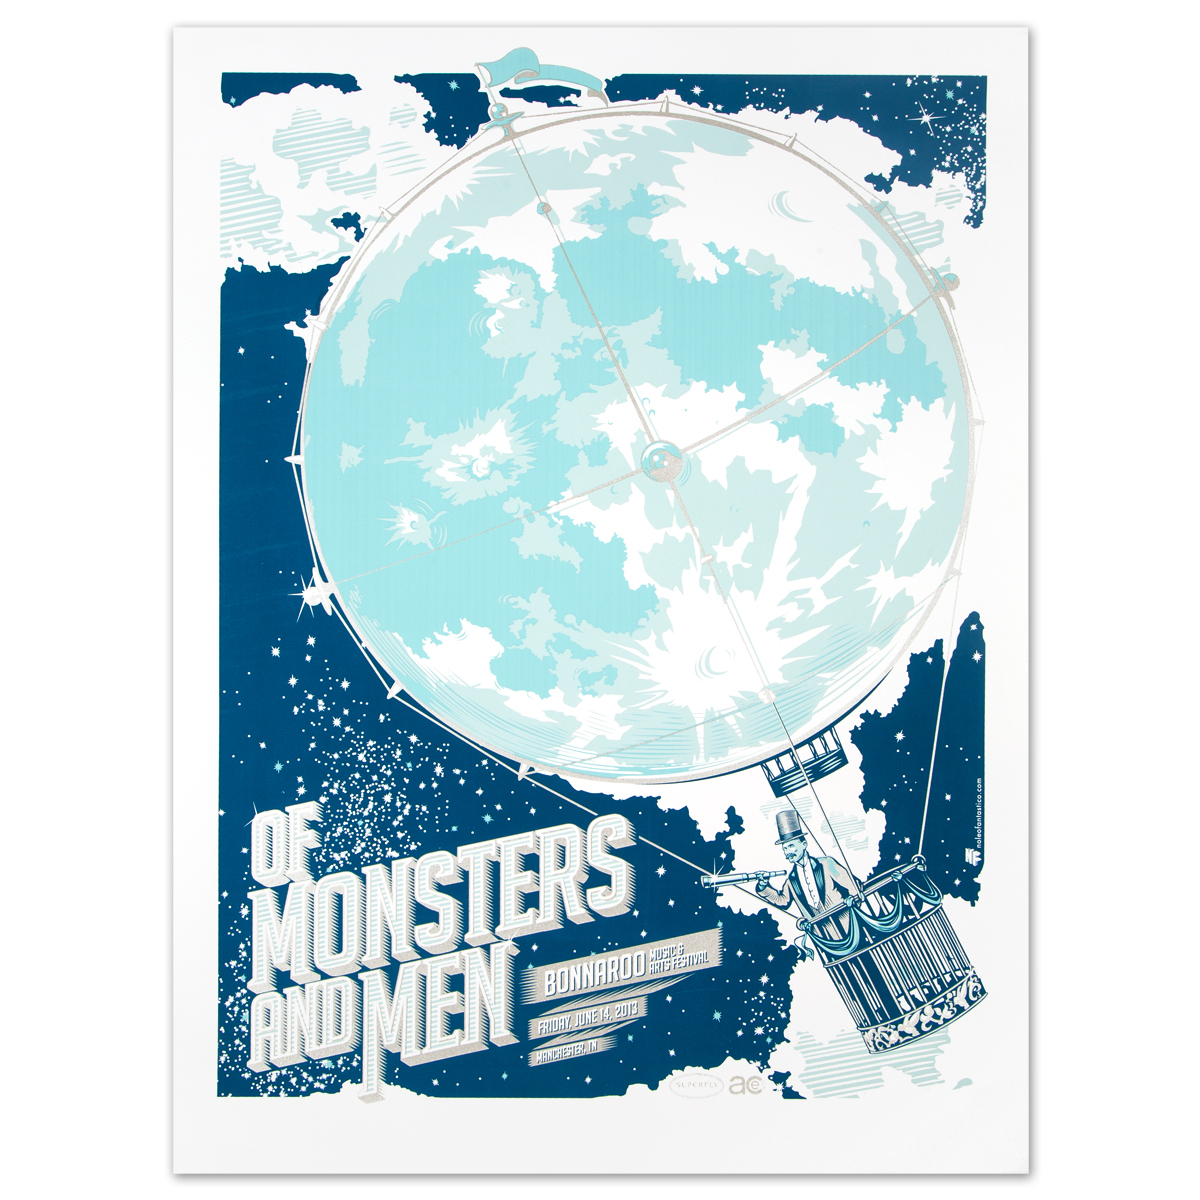 Of Monsters and Men Bonnaroo 2013 Poster by The Half and Half